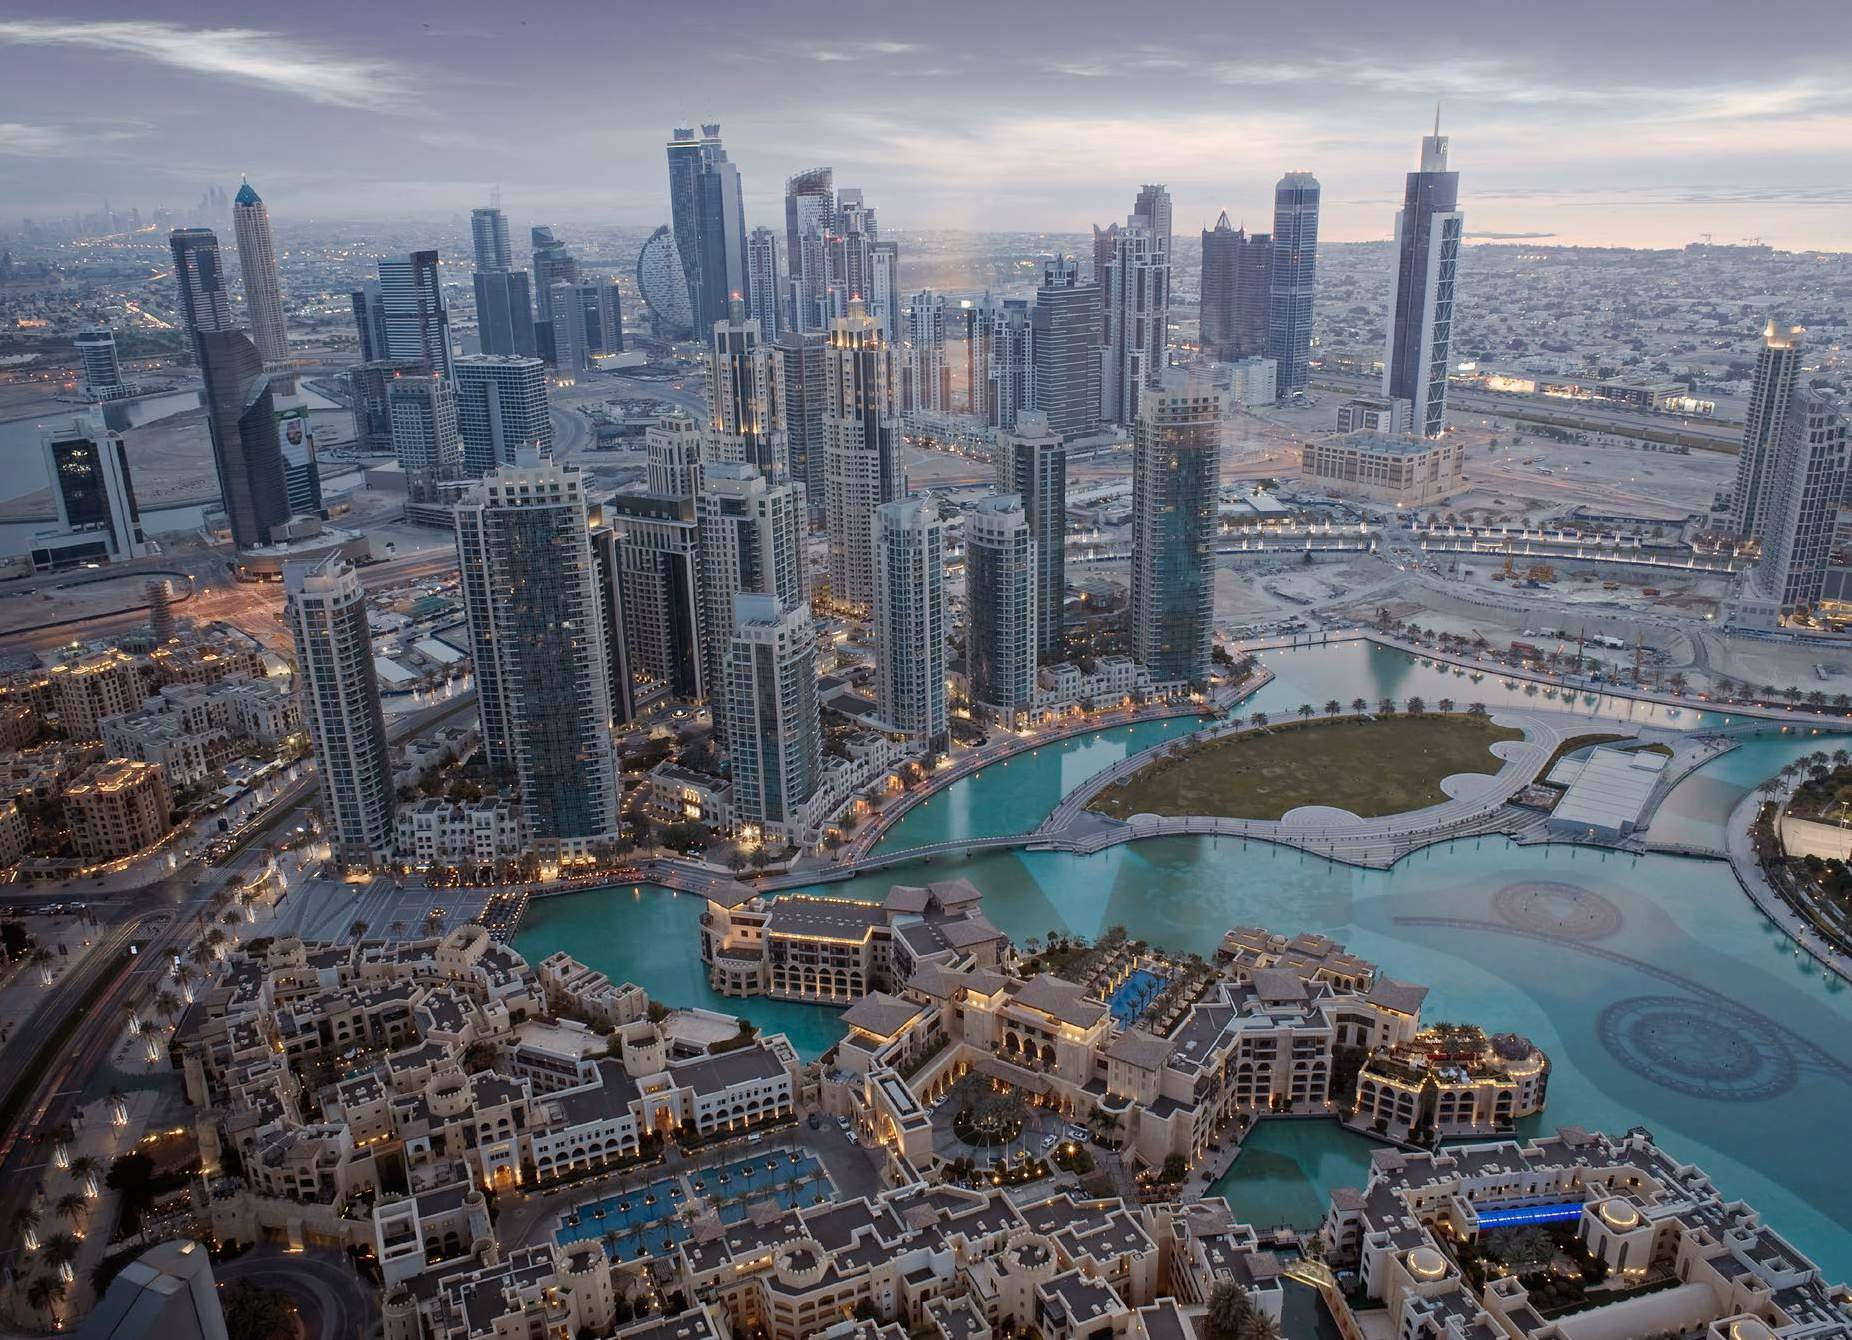 DUBAI A CITY THAT BREATHES INNOVATION